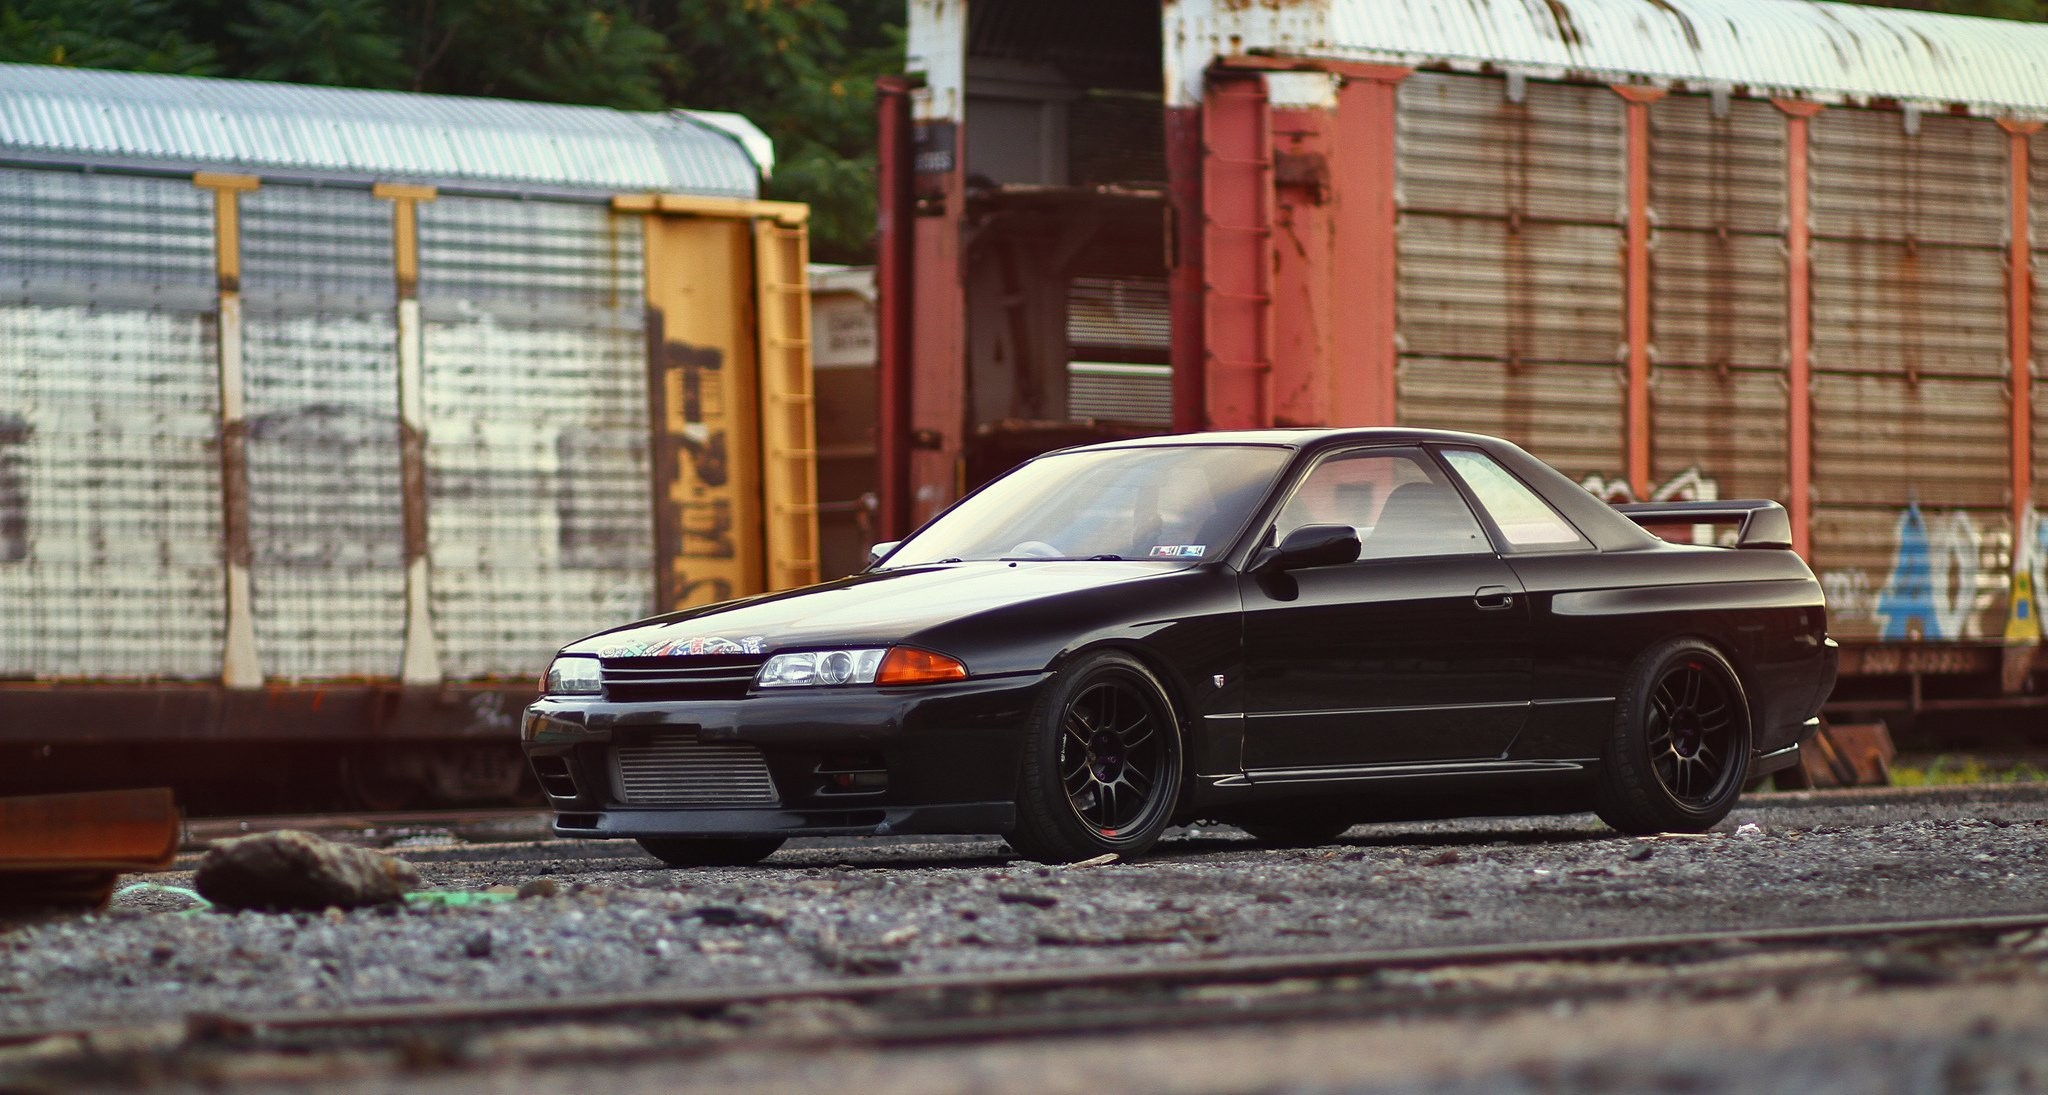 nissan skyline gt-r r32 black tuning nissan skyline black